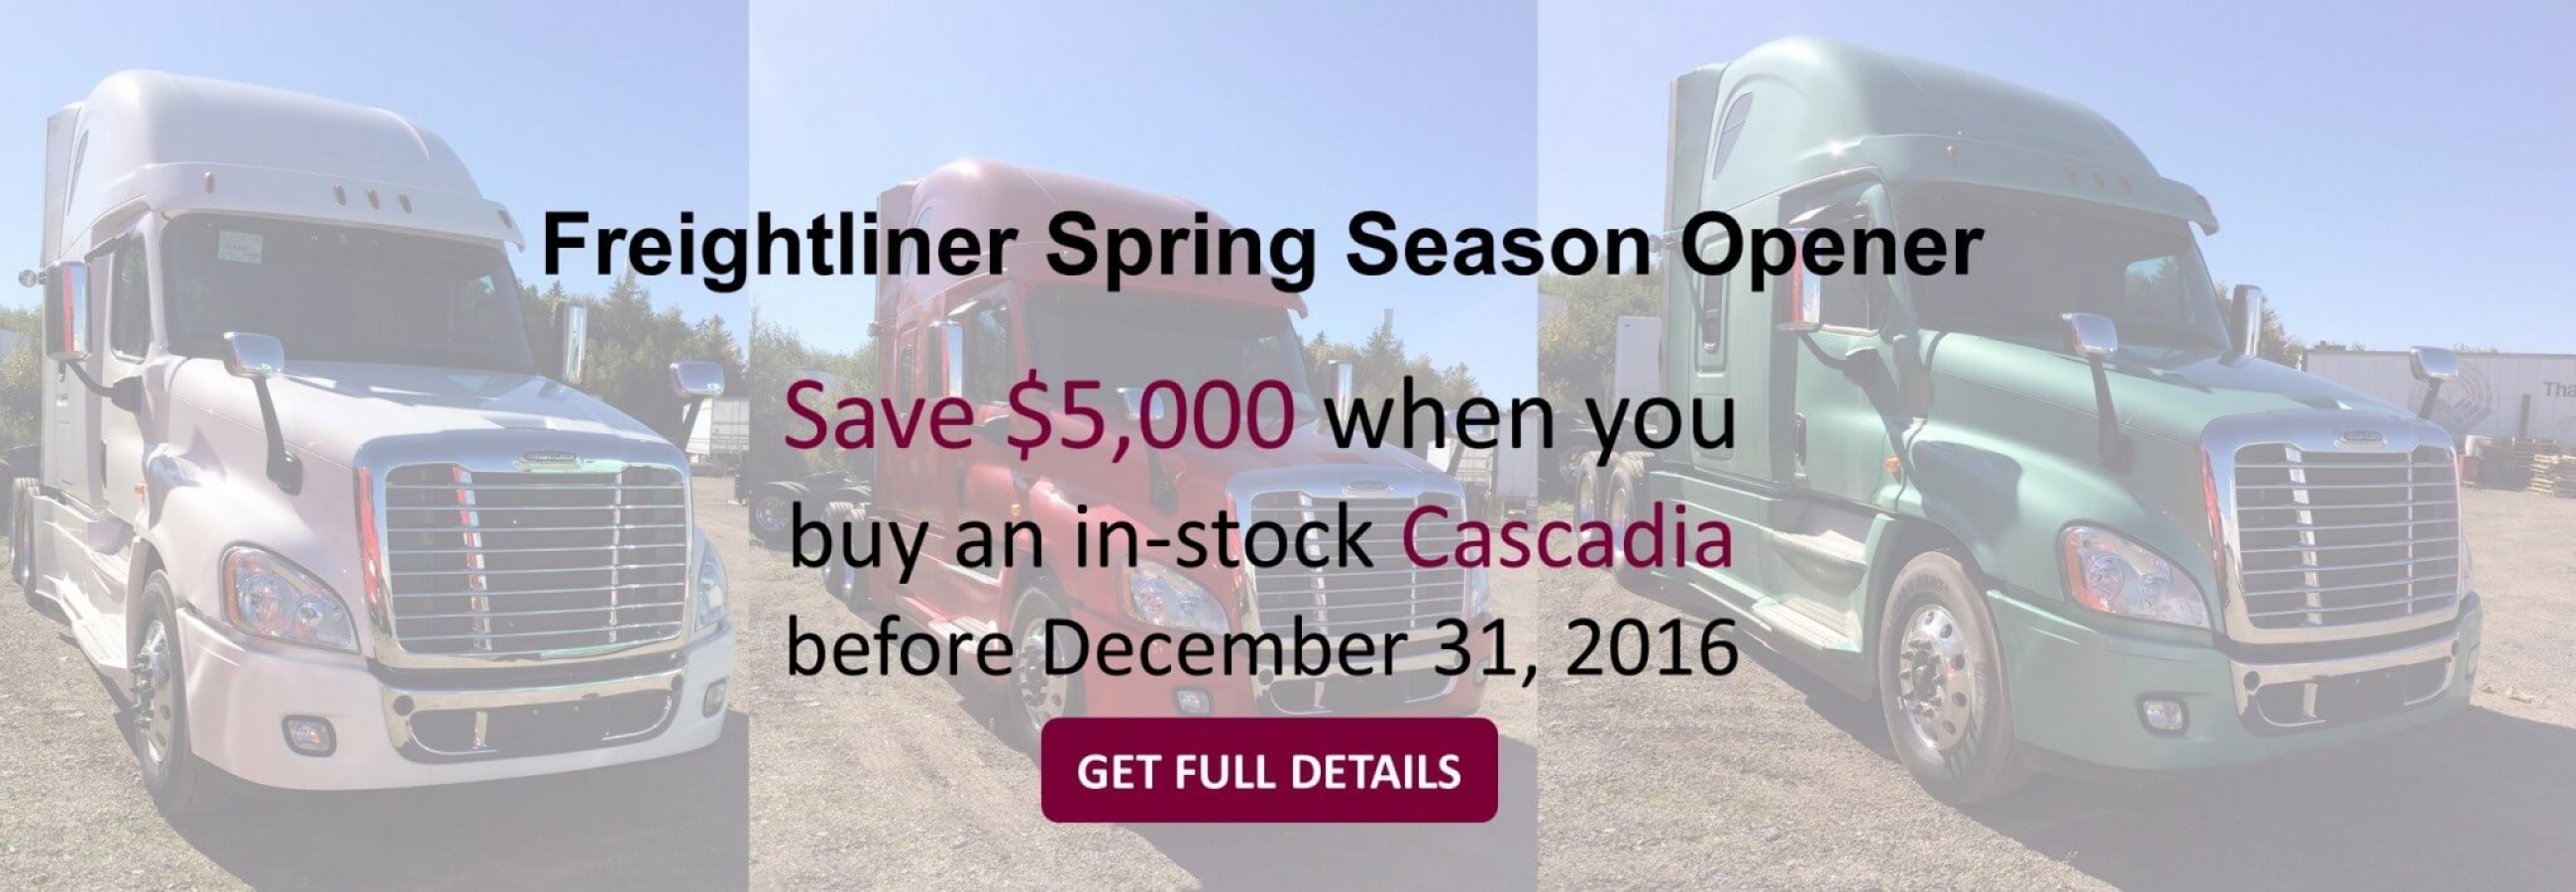 save $5,000 on in-stock Cascadia Units when you buy before december 31, 2016